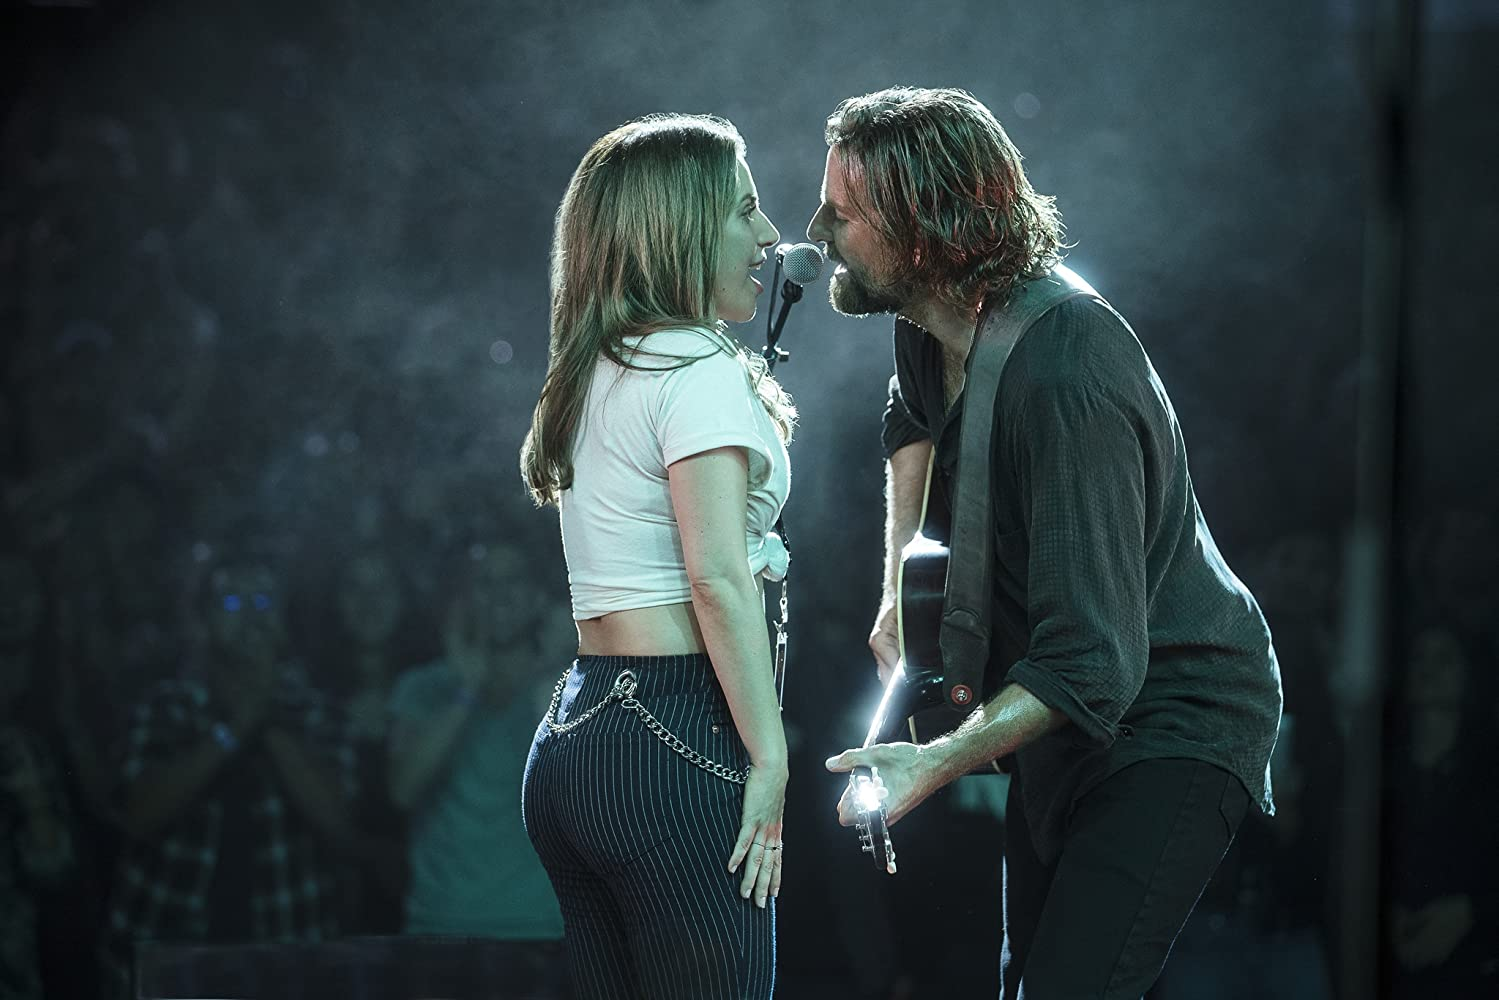 S-a nascut o stea - A Star Is Born (2018) Online Subtitrat in Romana